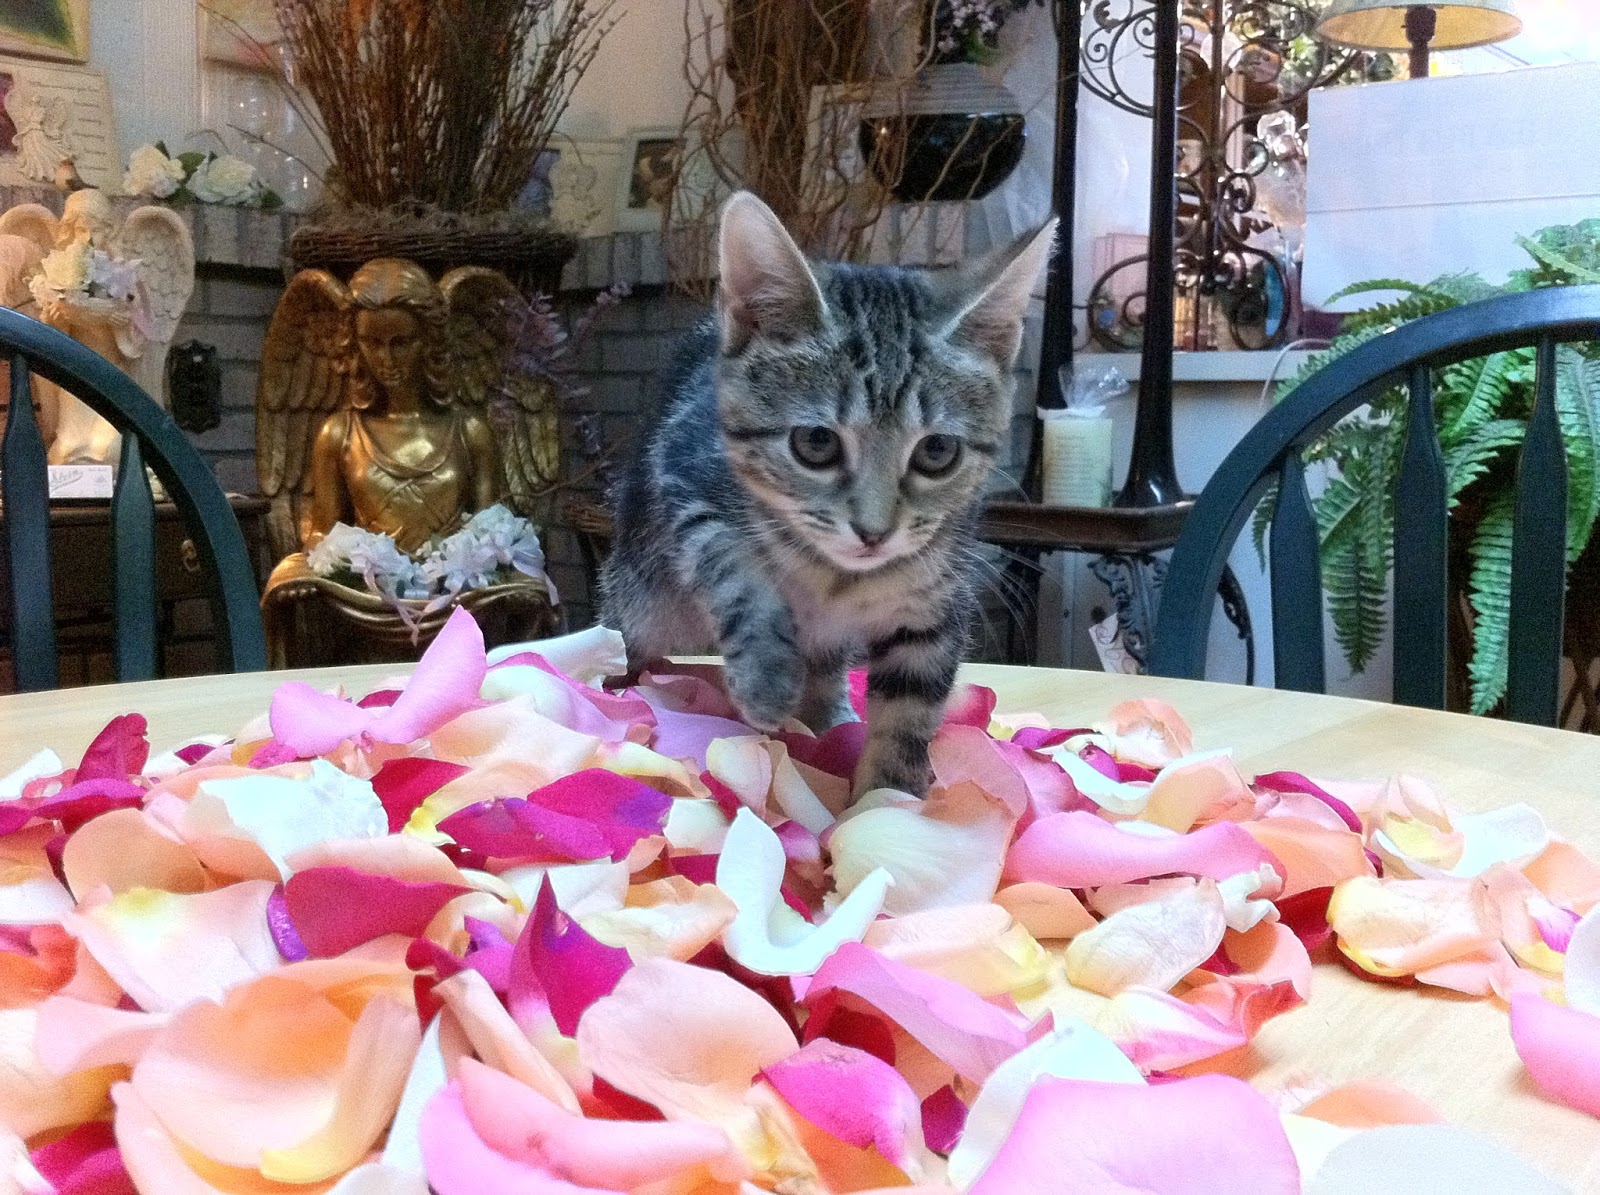 The enchanted petal for the love of cats sophie cat walking through rose petals stein your florist co izmirmasajfo Choice Image